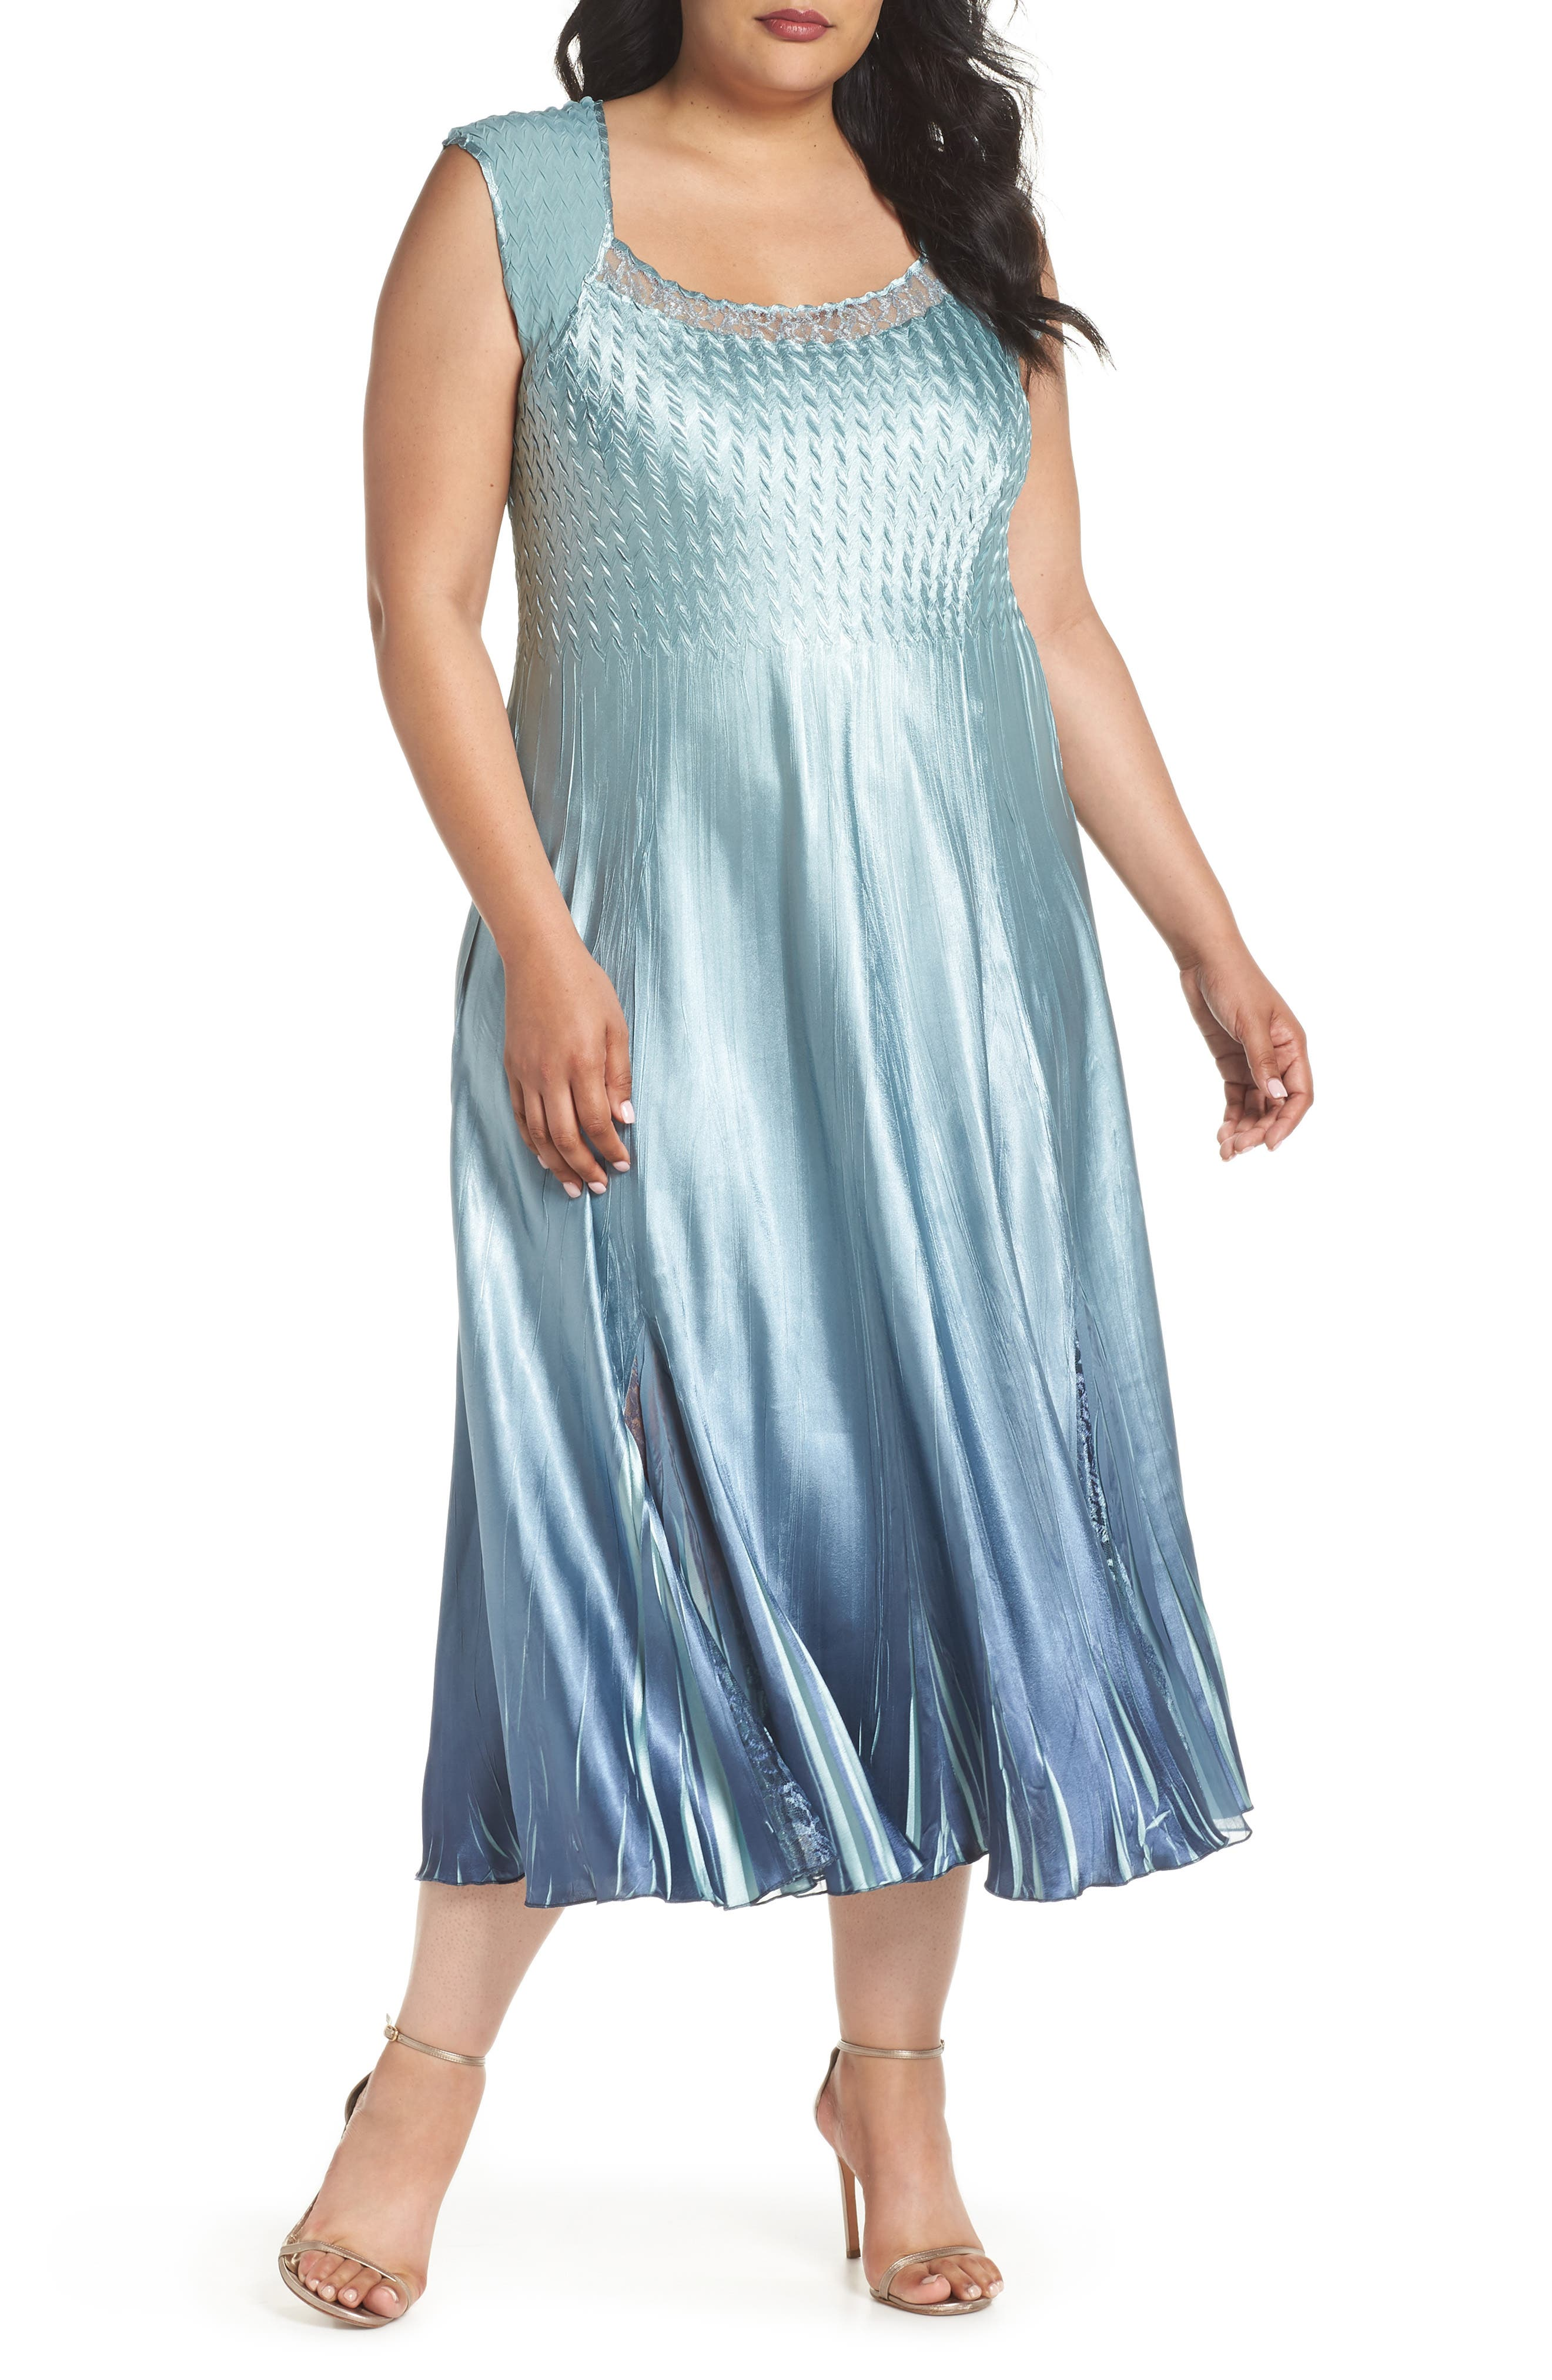 Lace & Charmeuse A-Lined Dress with Jacket,                             Alternate thumbnail 7, color,                             Ocean Blue Night Ombre